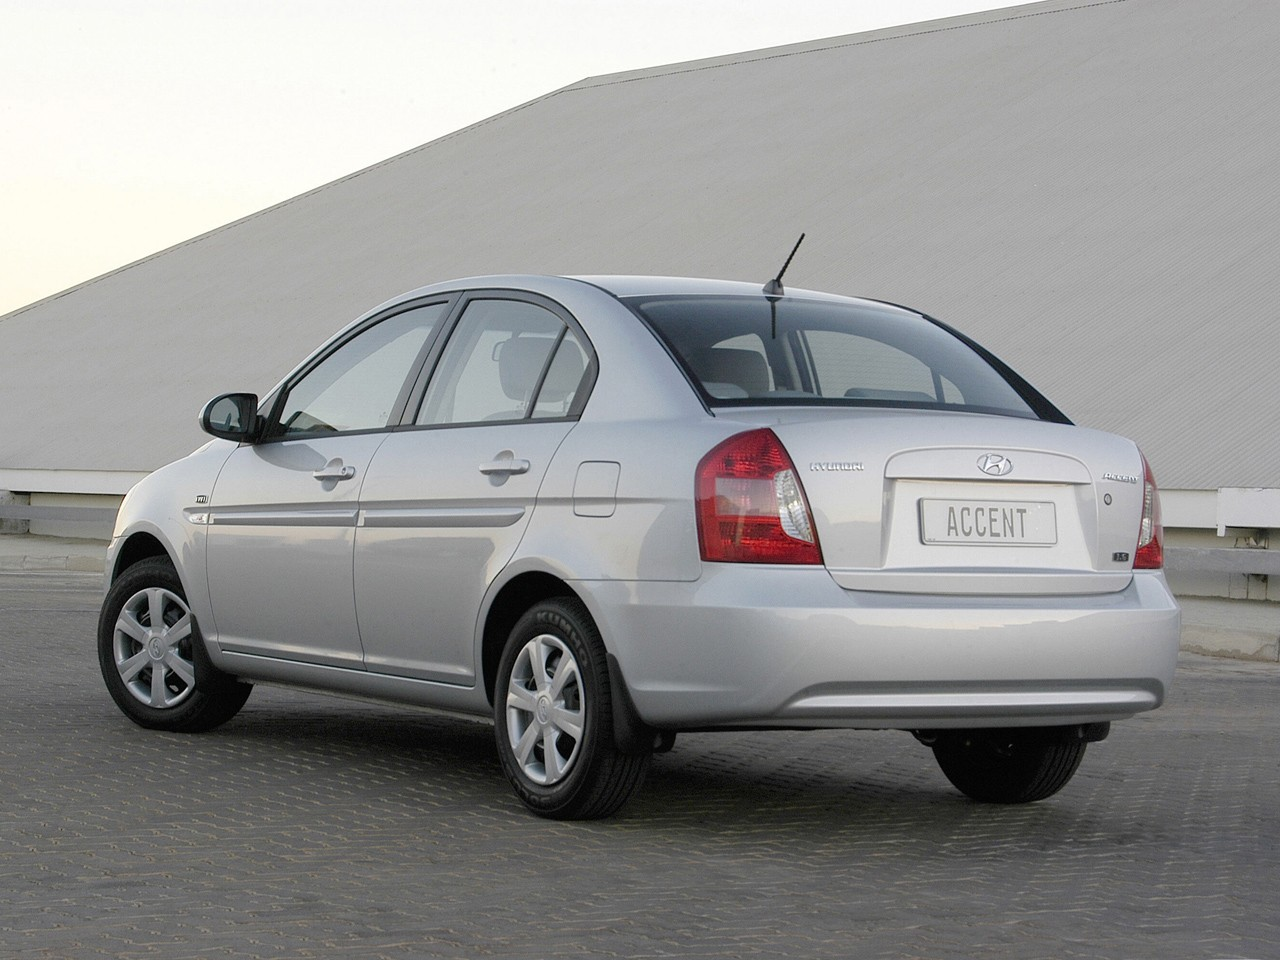 2009 Hyundai Accent Hatchback >> HYUNDAI Accent 4 Doors - 2006, 2007, 2008, 2009, 2010, 2011 - autoevolution